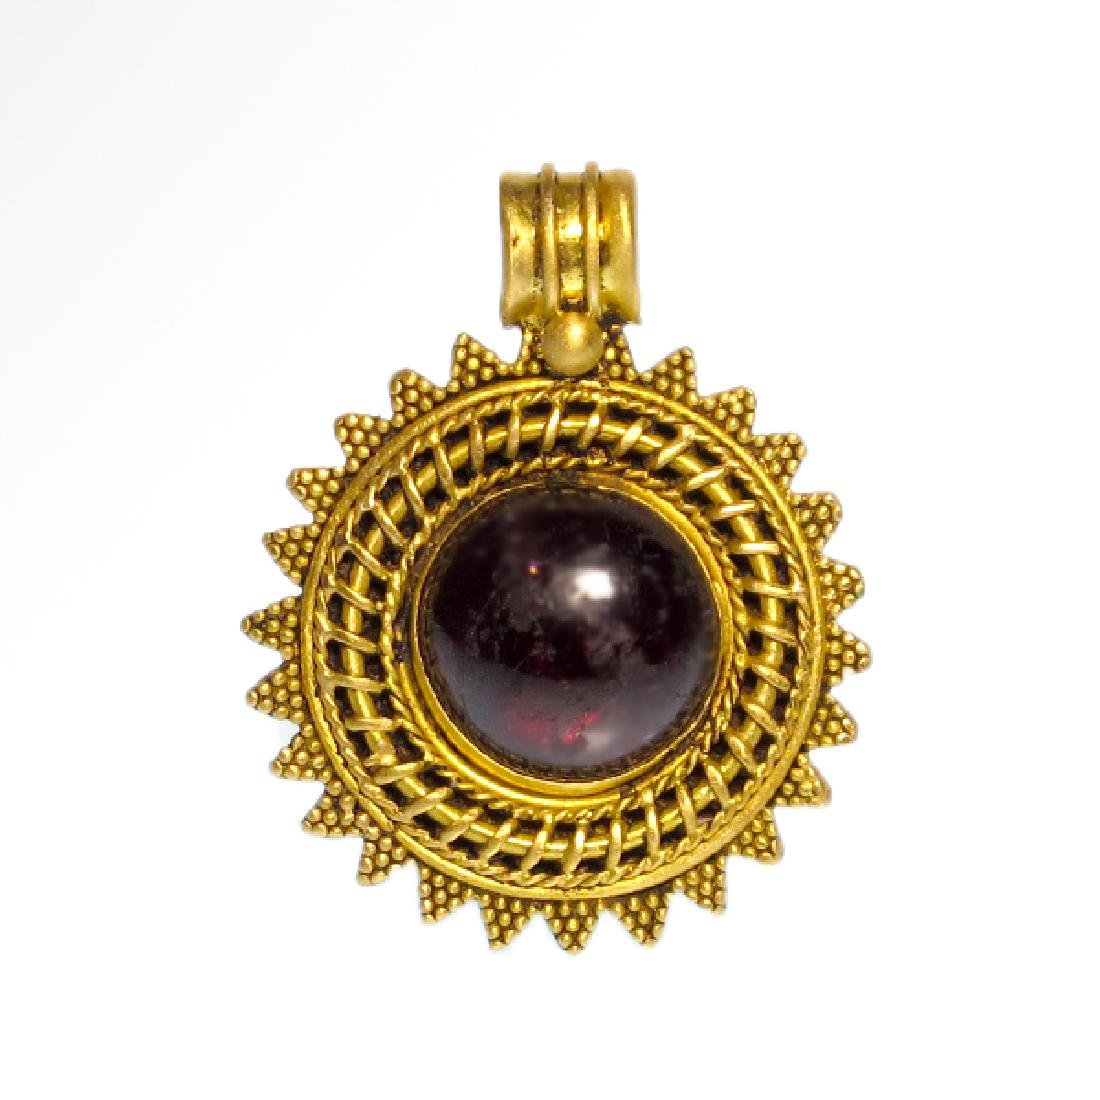 Greek Gold and Garnet Pendant, c. 2nd Century B.C.